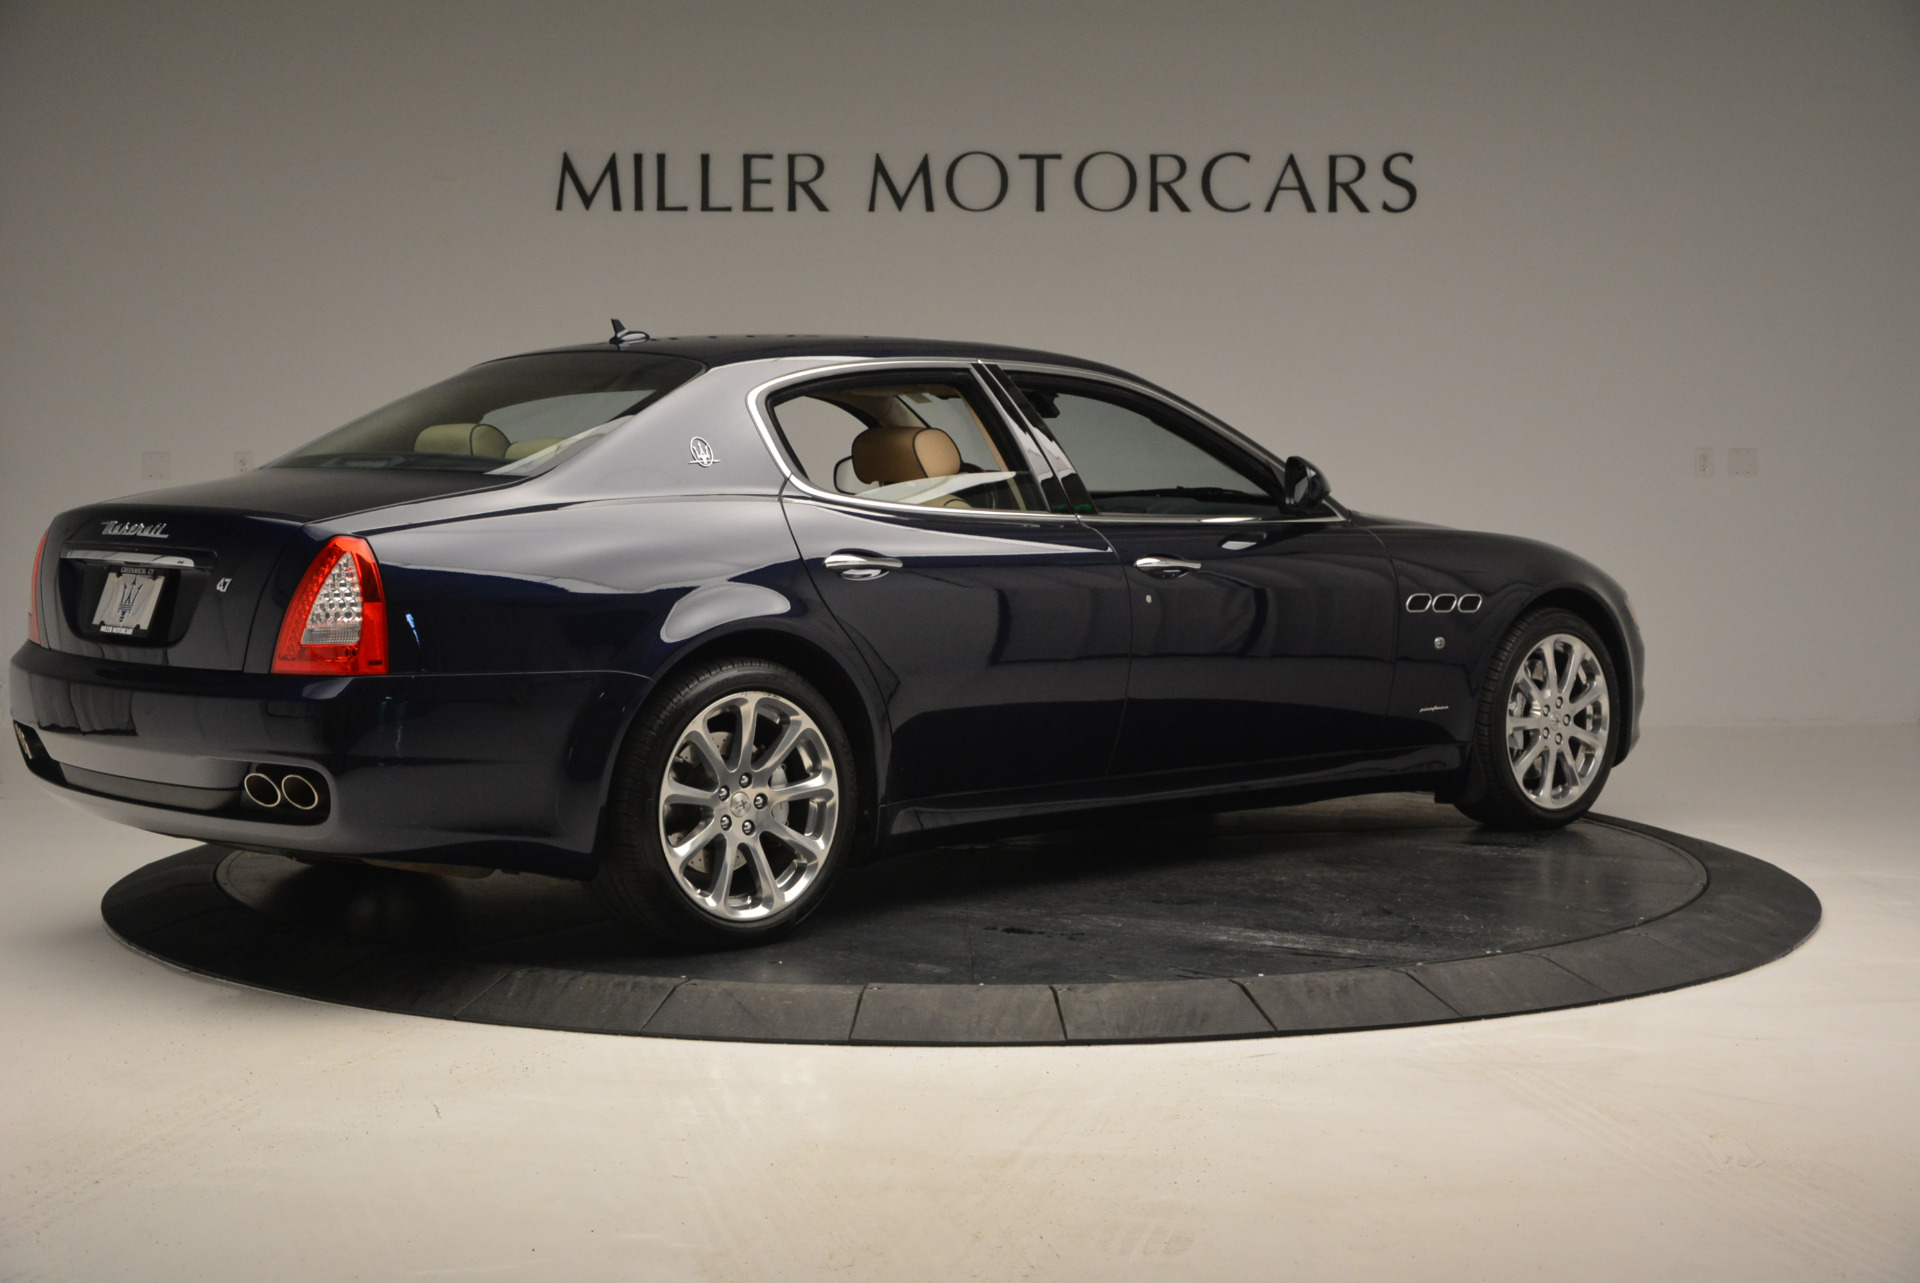 Used 2010 Maserati Quattroporte S For Sale In Westport, CT 795_p8